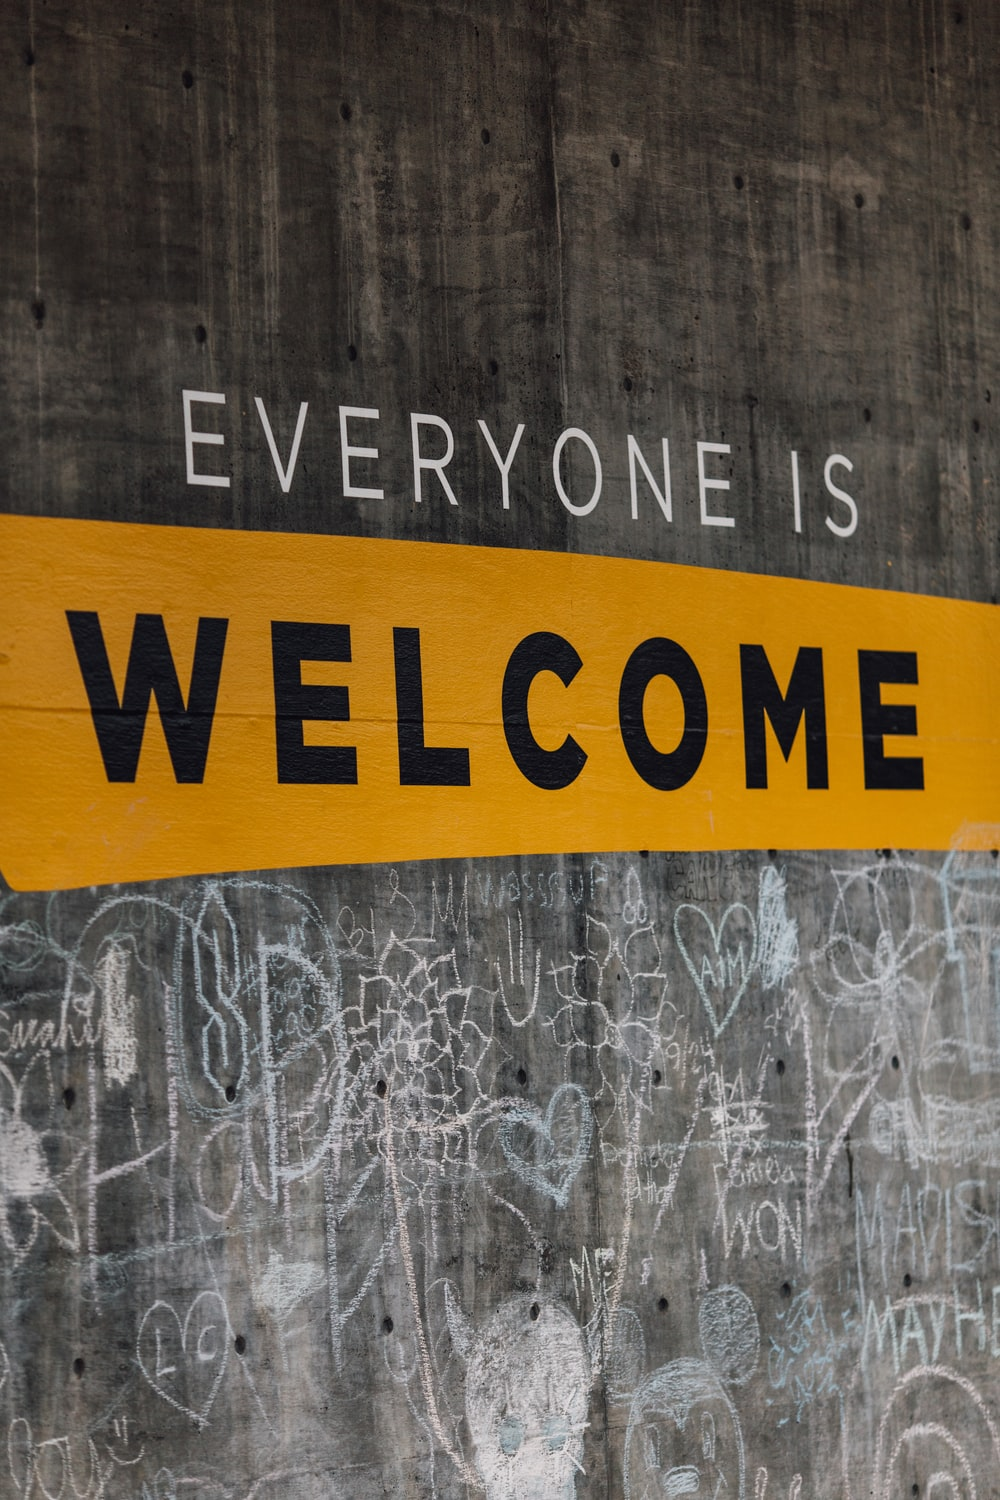 Everyone is Welcome signage